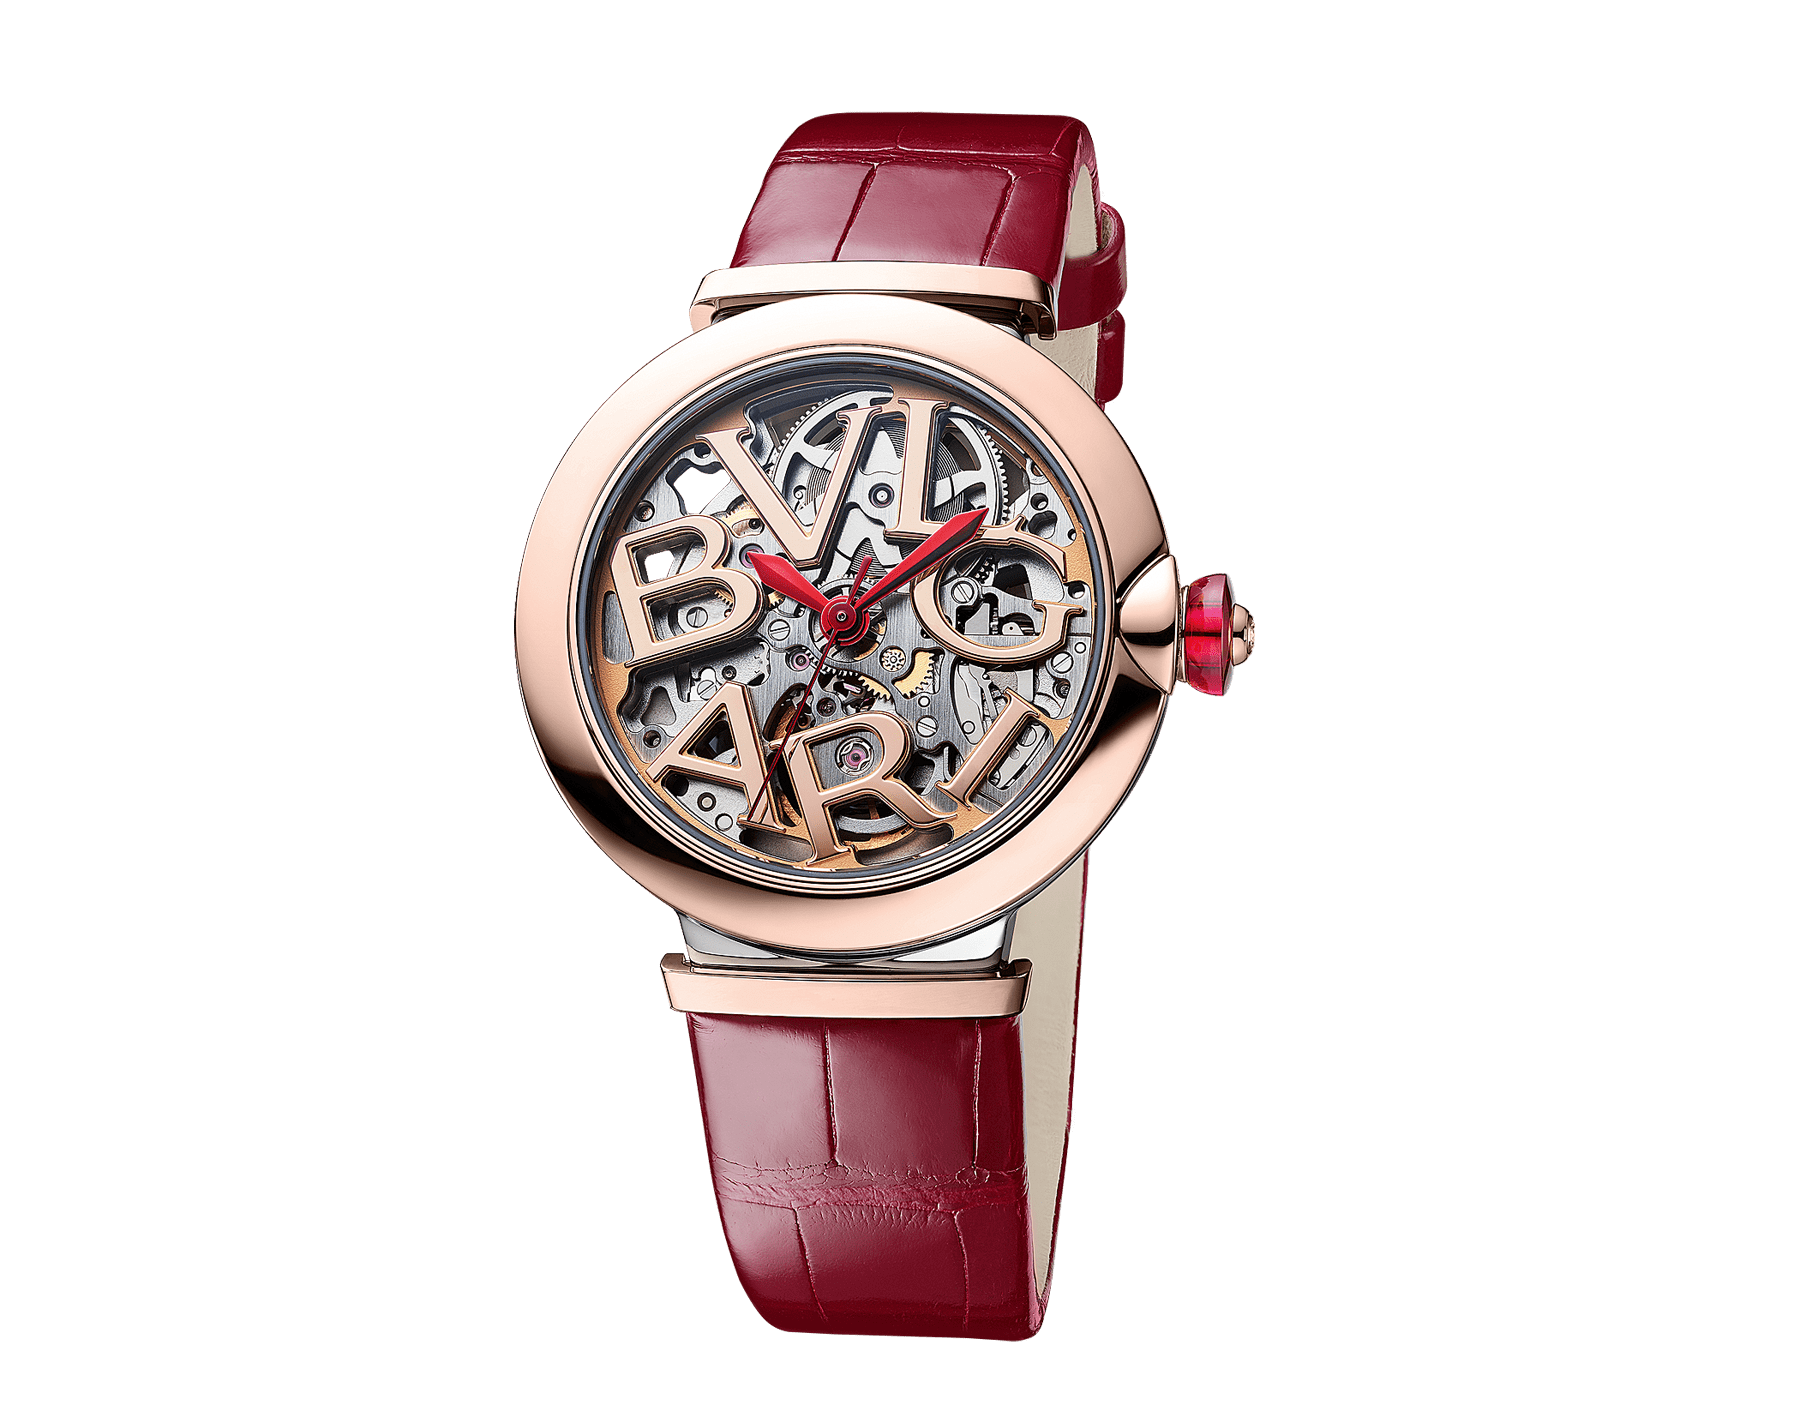 LVCEA Skeleton watch with mechanical manufacture movement, automatic winding and skeleton execution, polished stainless steel case, 18 kt rose gold bezel, openwork BVLGARI logo dial and links, and red alligator bracelet. Water-resistant up to 30 metres. 103373 image 2